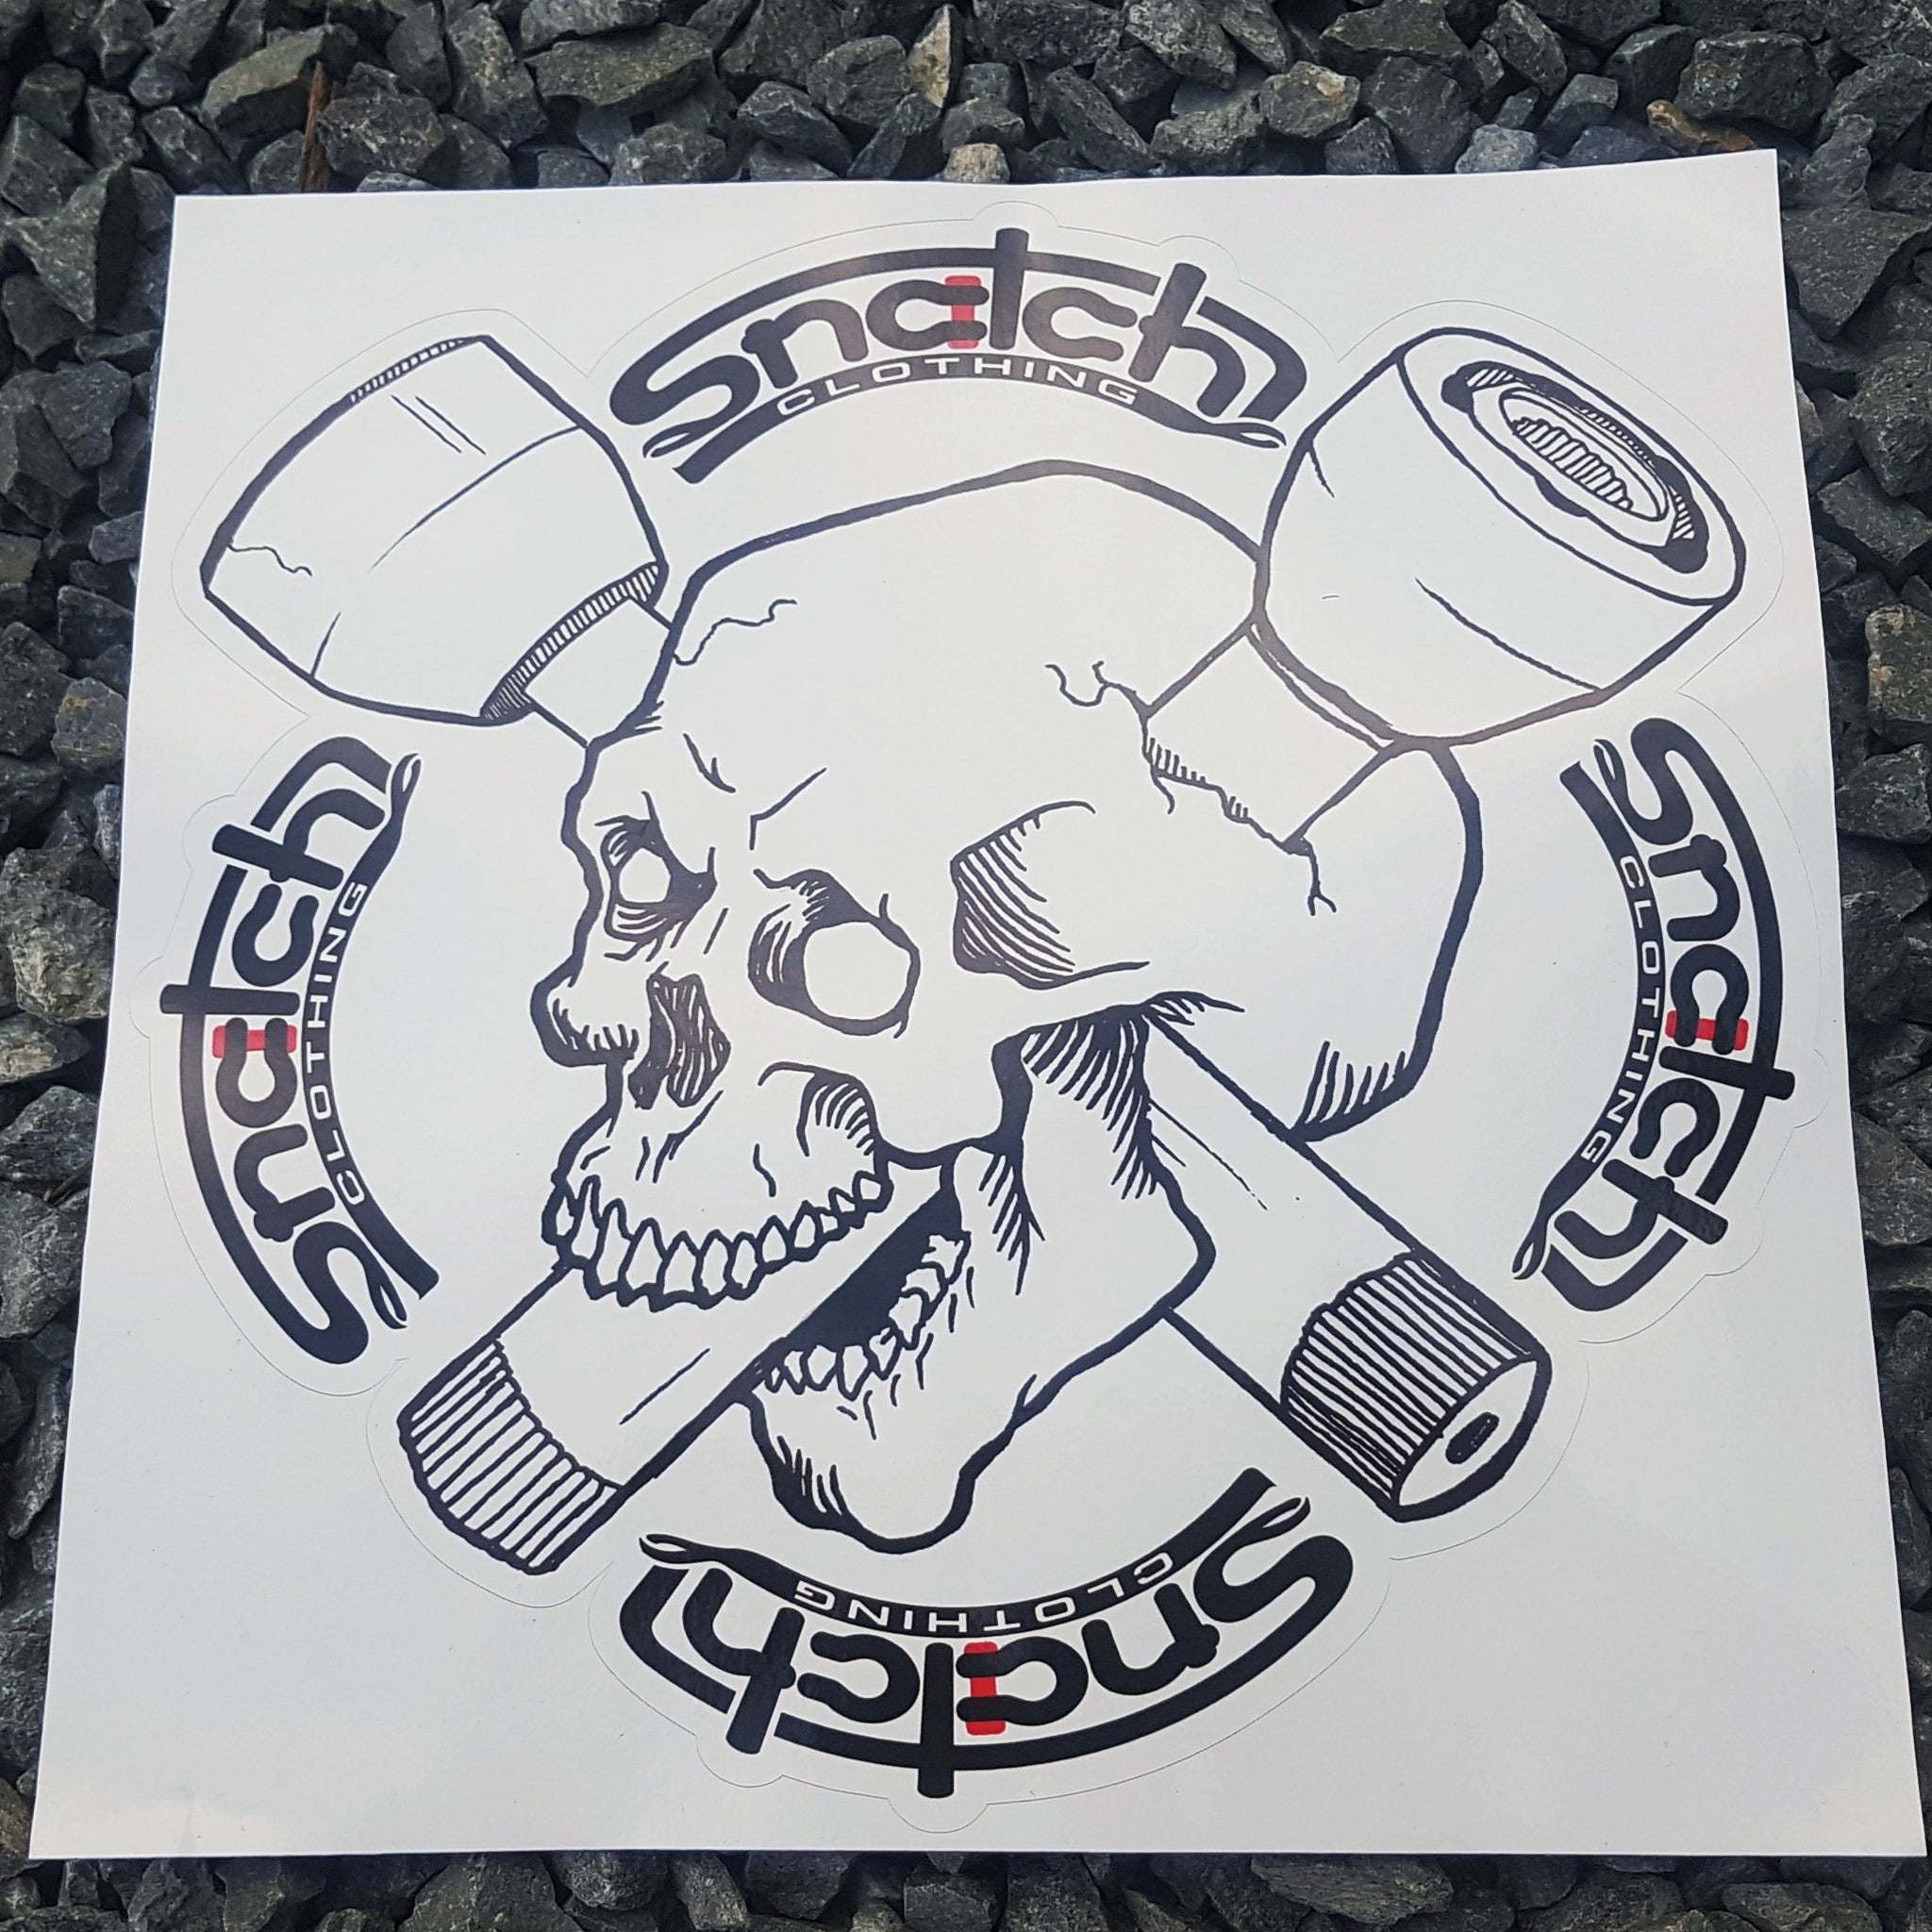 Skull and CV sticker